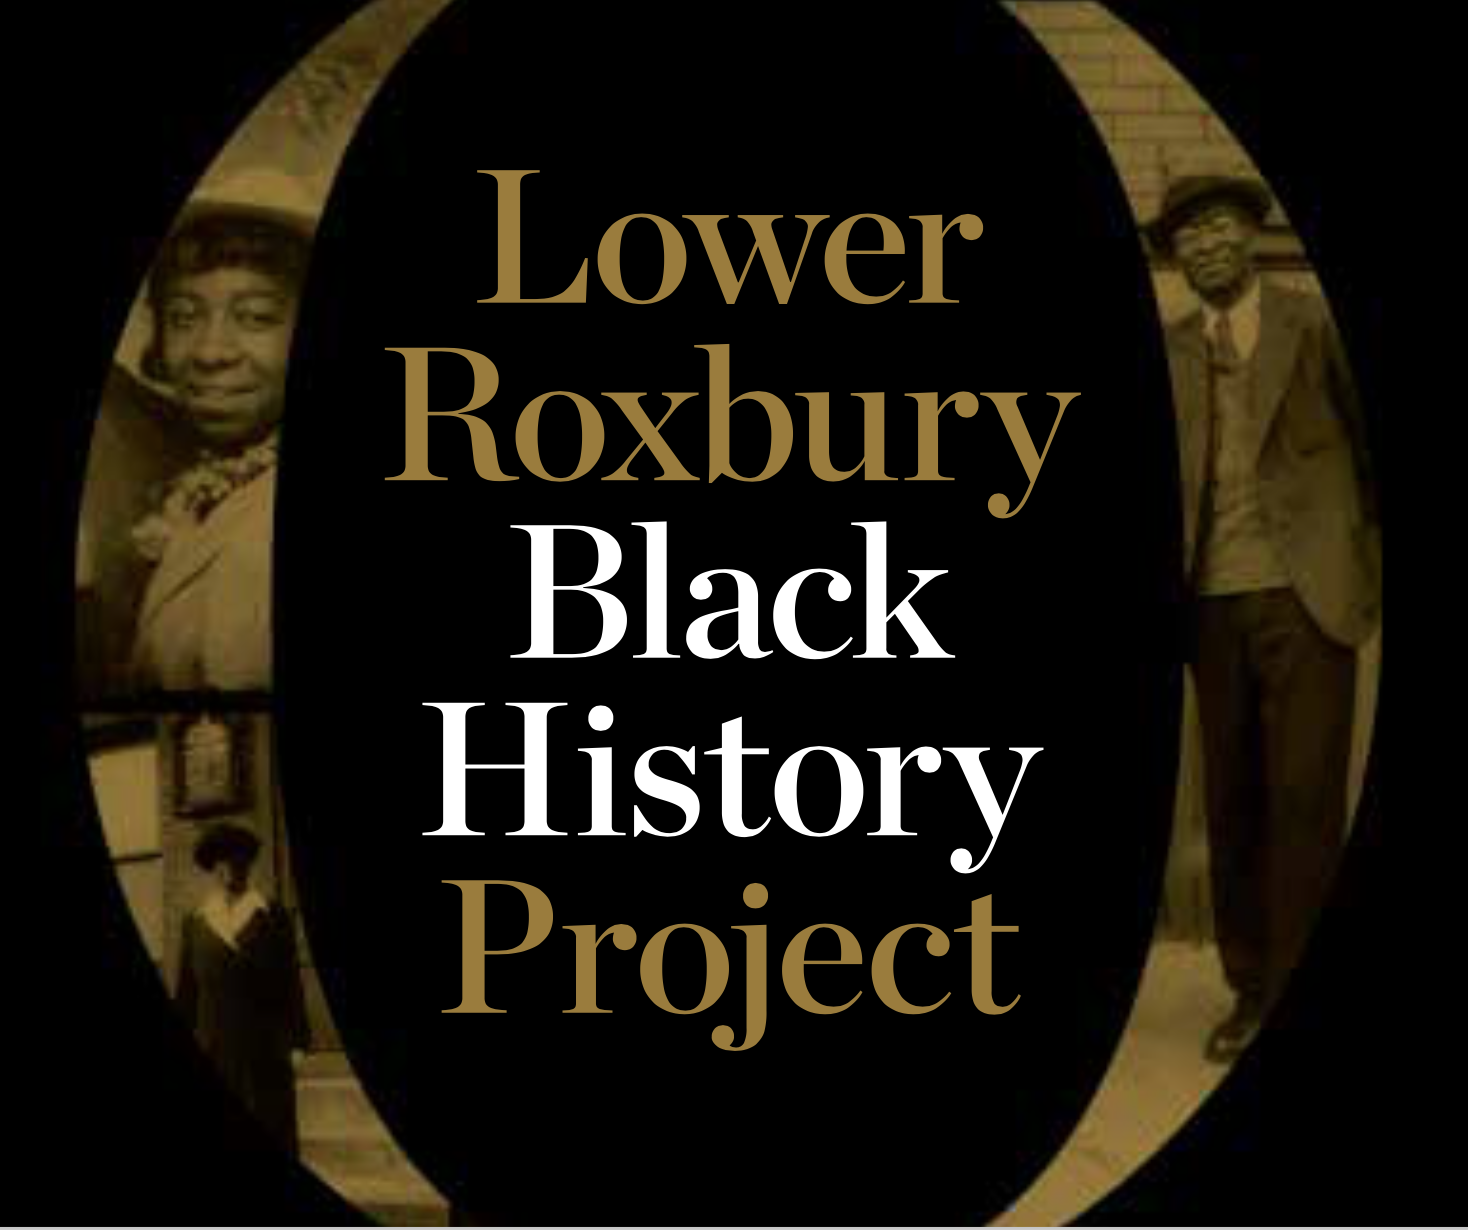 Lower Roxbury Black History Project |